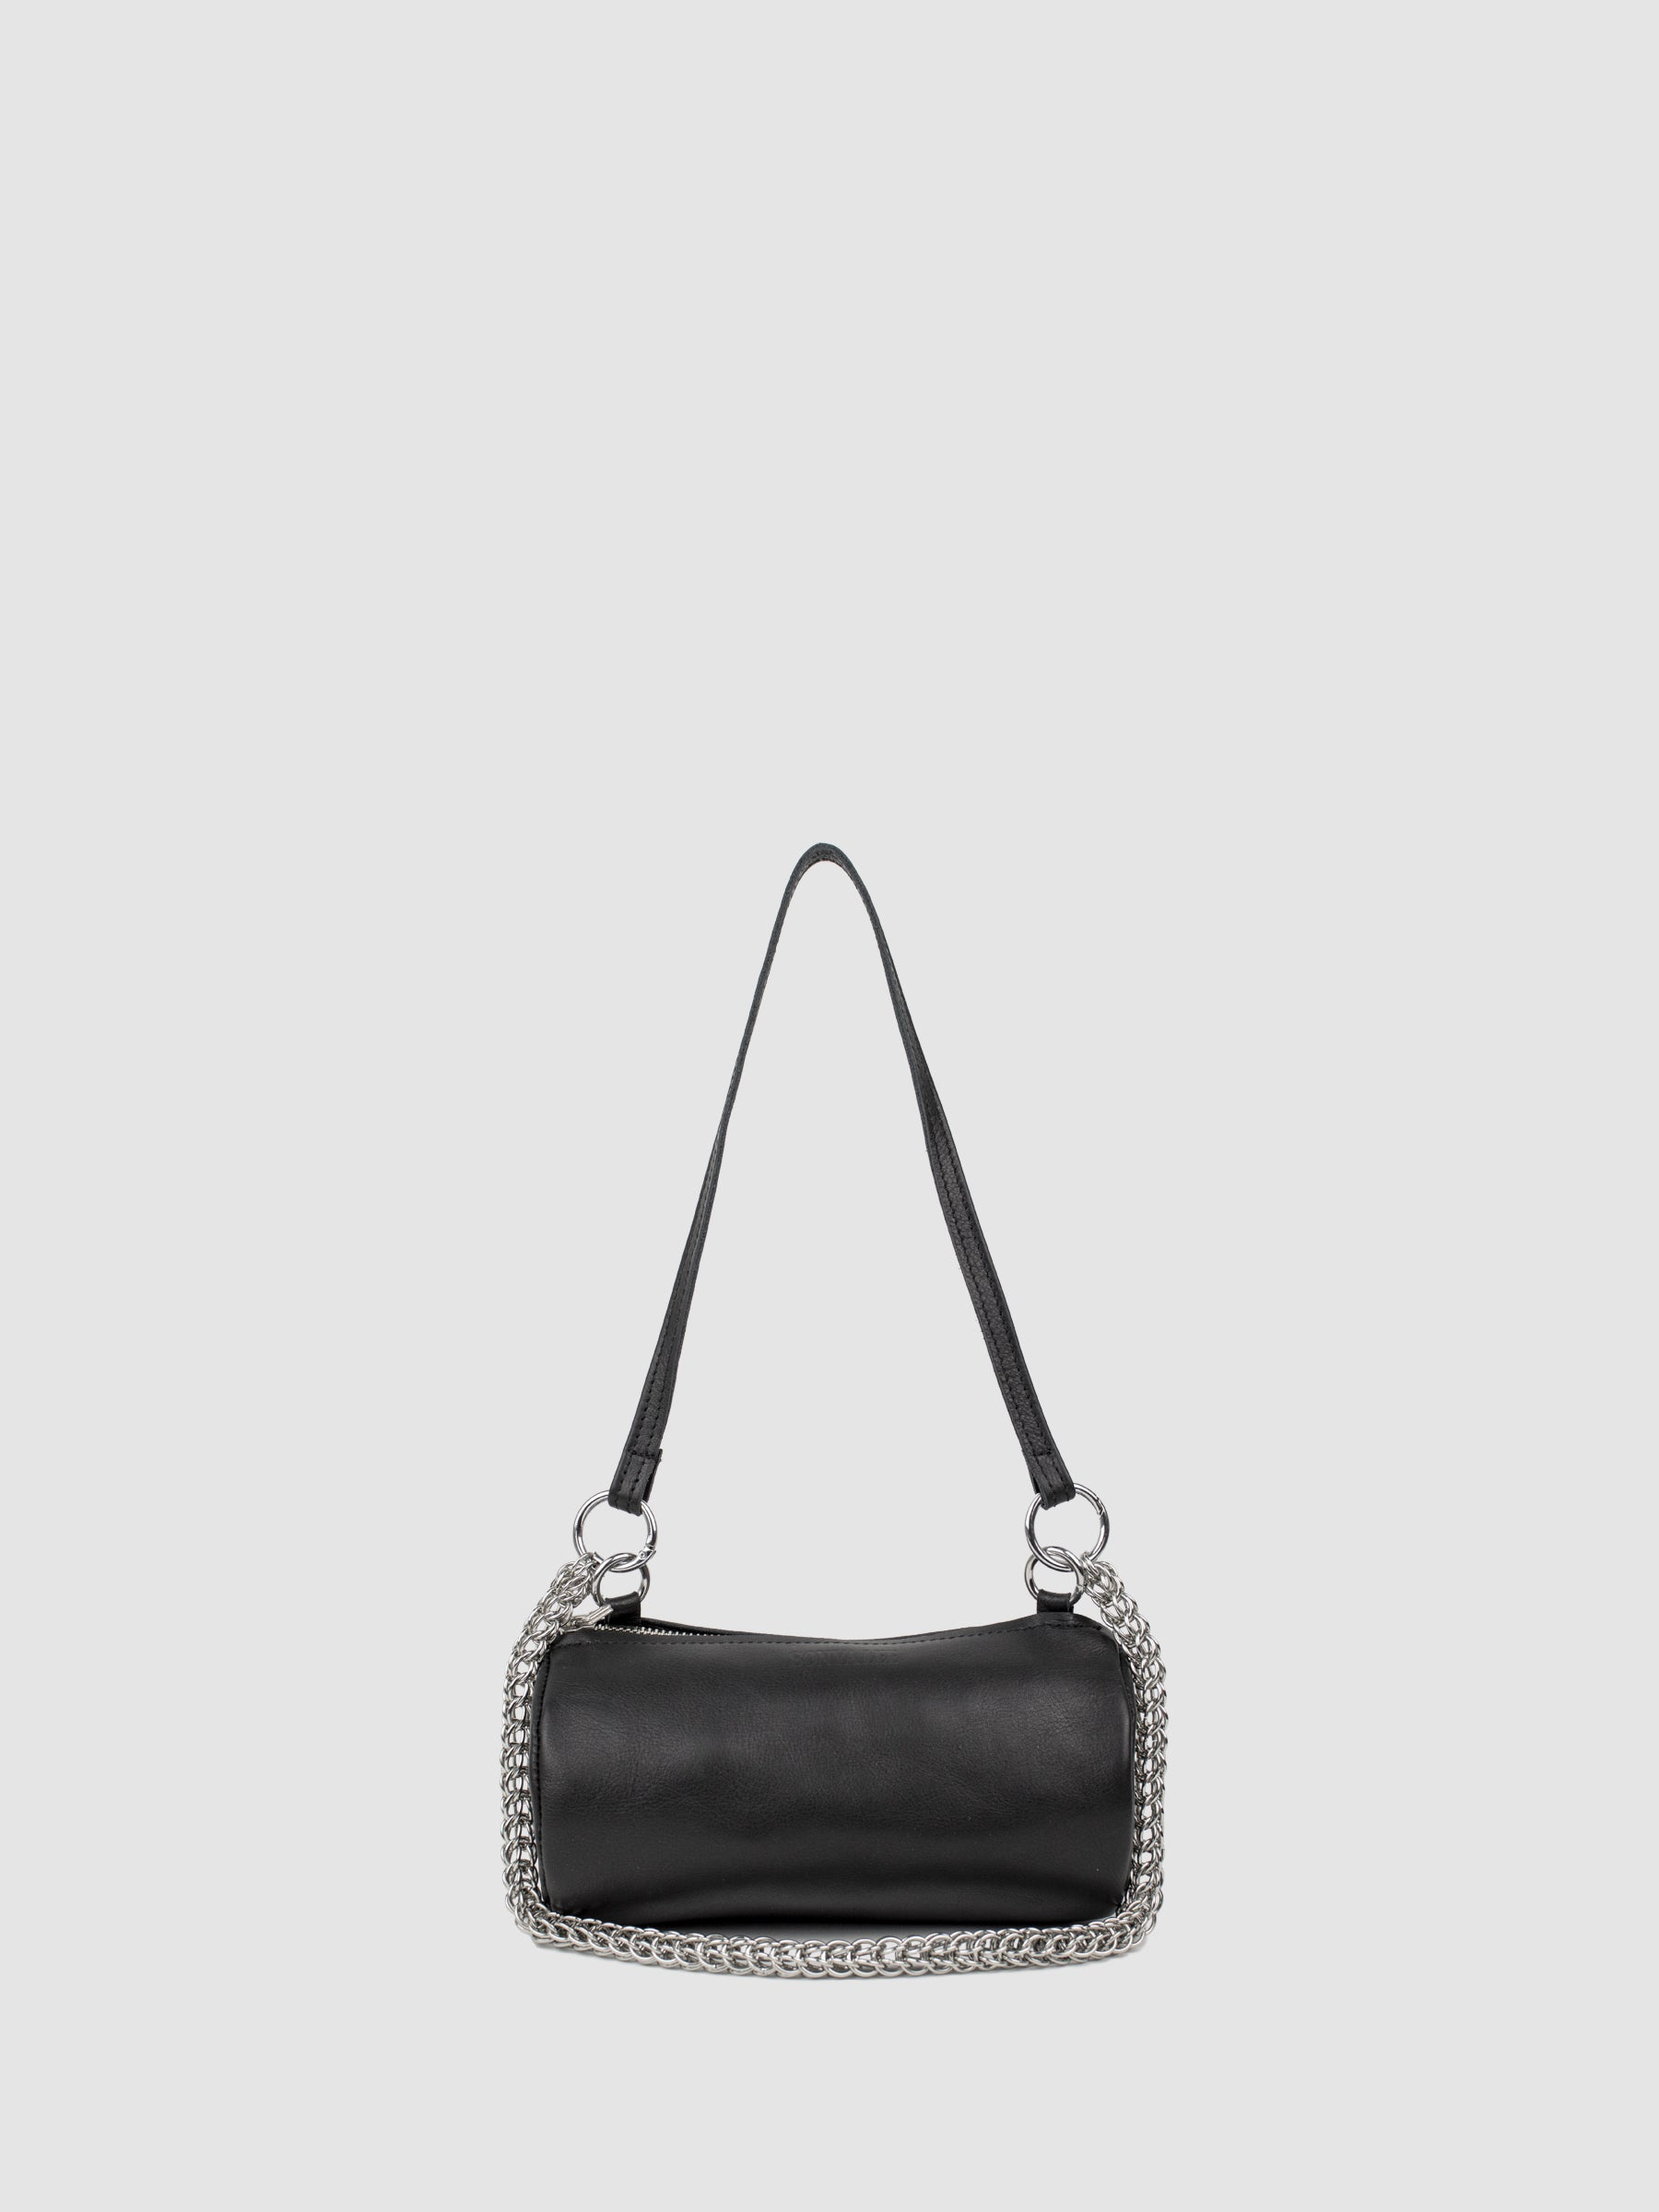 The SONYA LEE Georgia mini barrel bag in soft black serpentine chain. Ethically handmade in Canada using full grain leather. Lifetime warranty. Fits all the essentials. Adjustable leather strap for crossbody and handheld wear. Free shipping across North America.